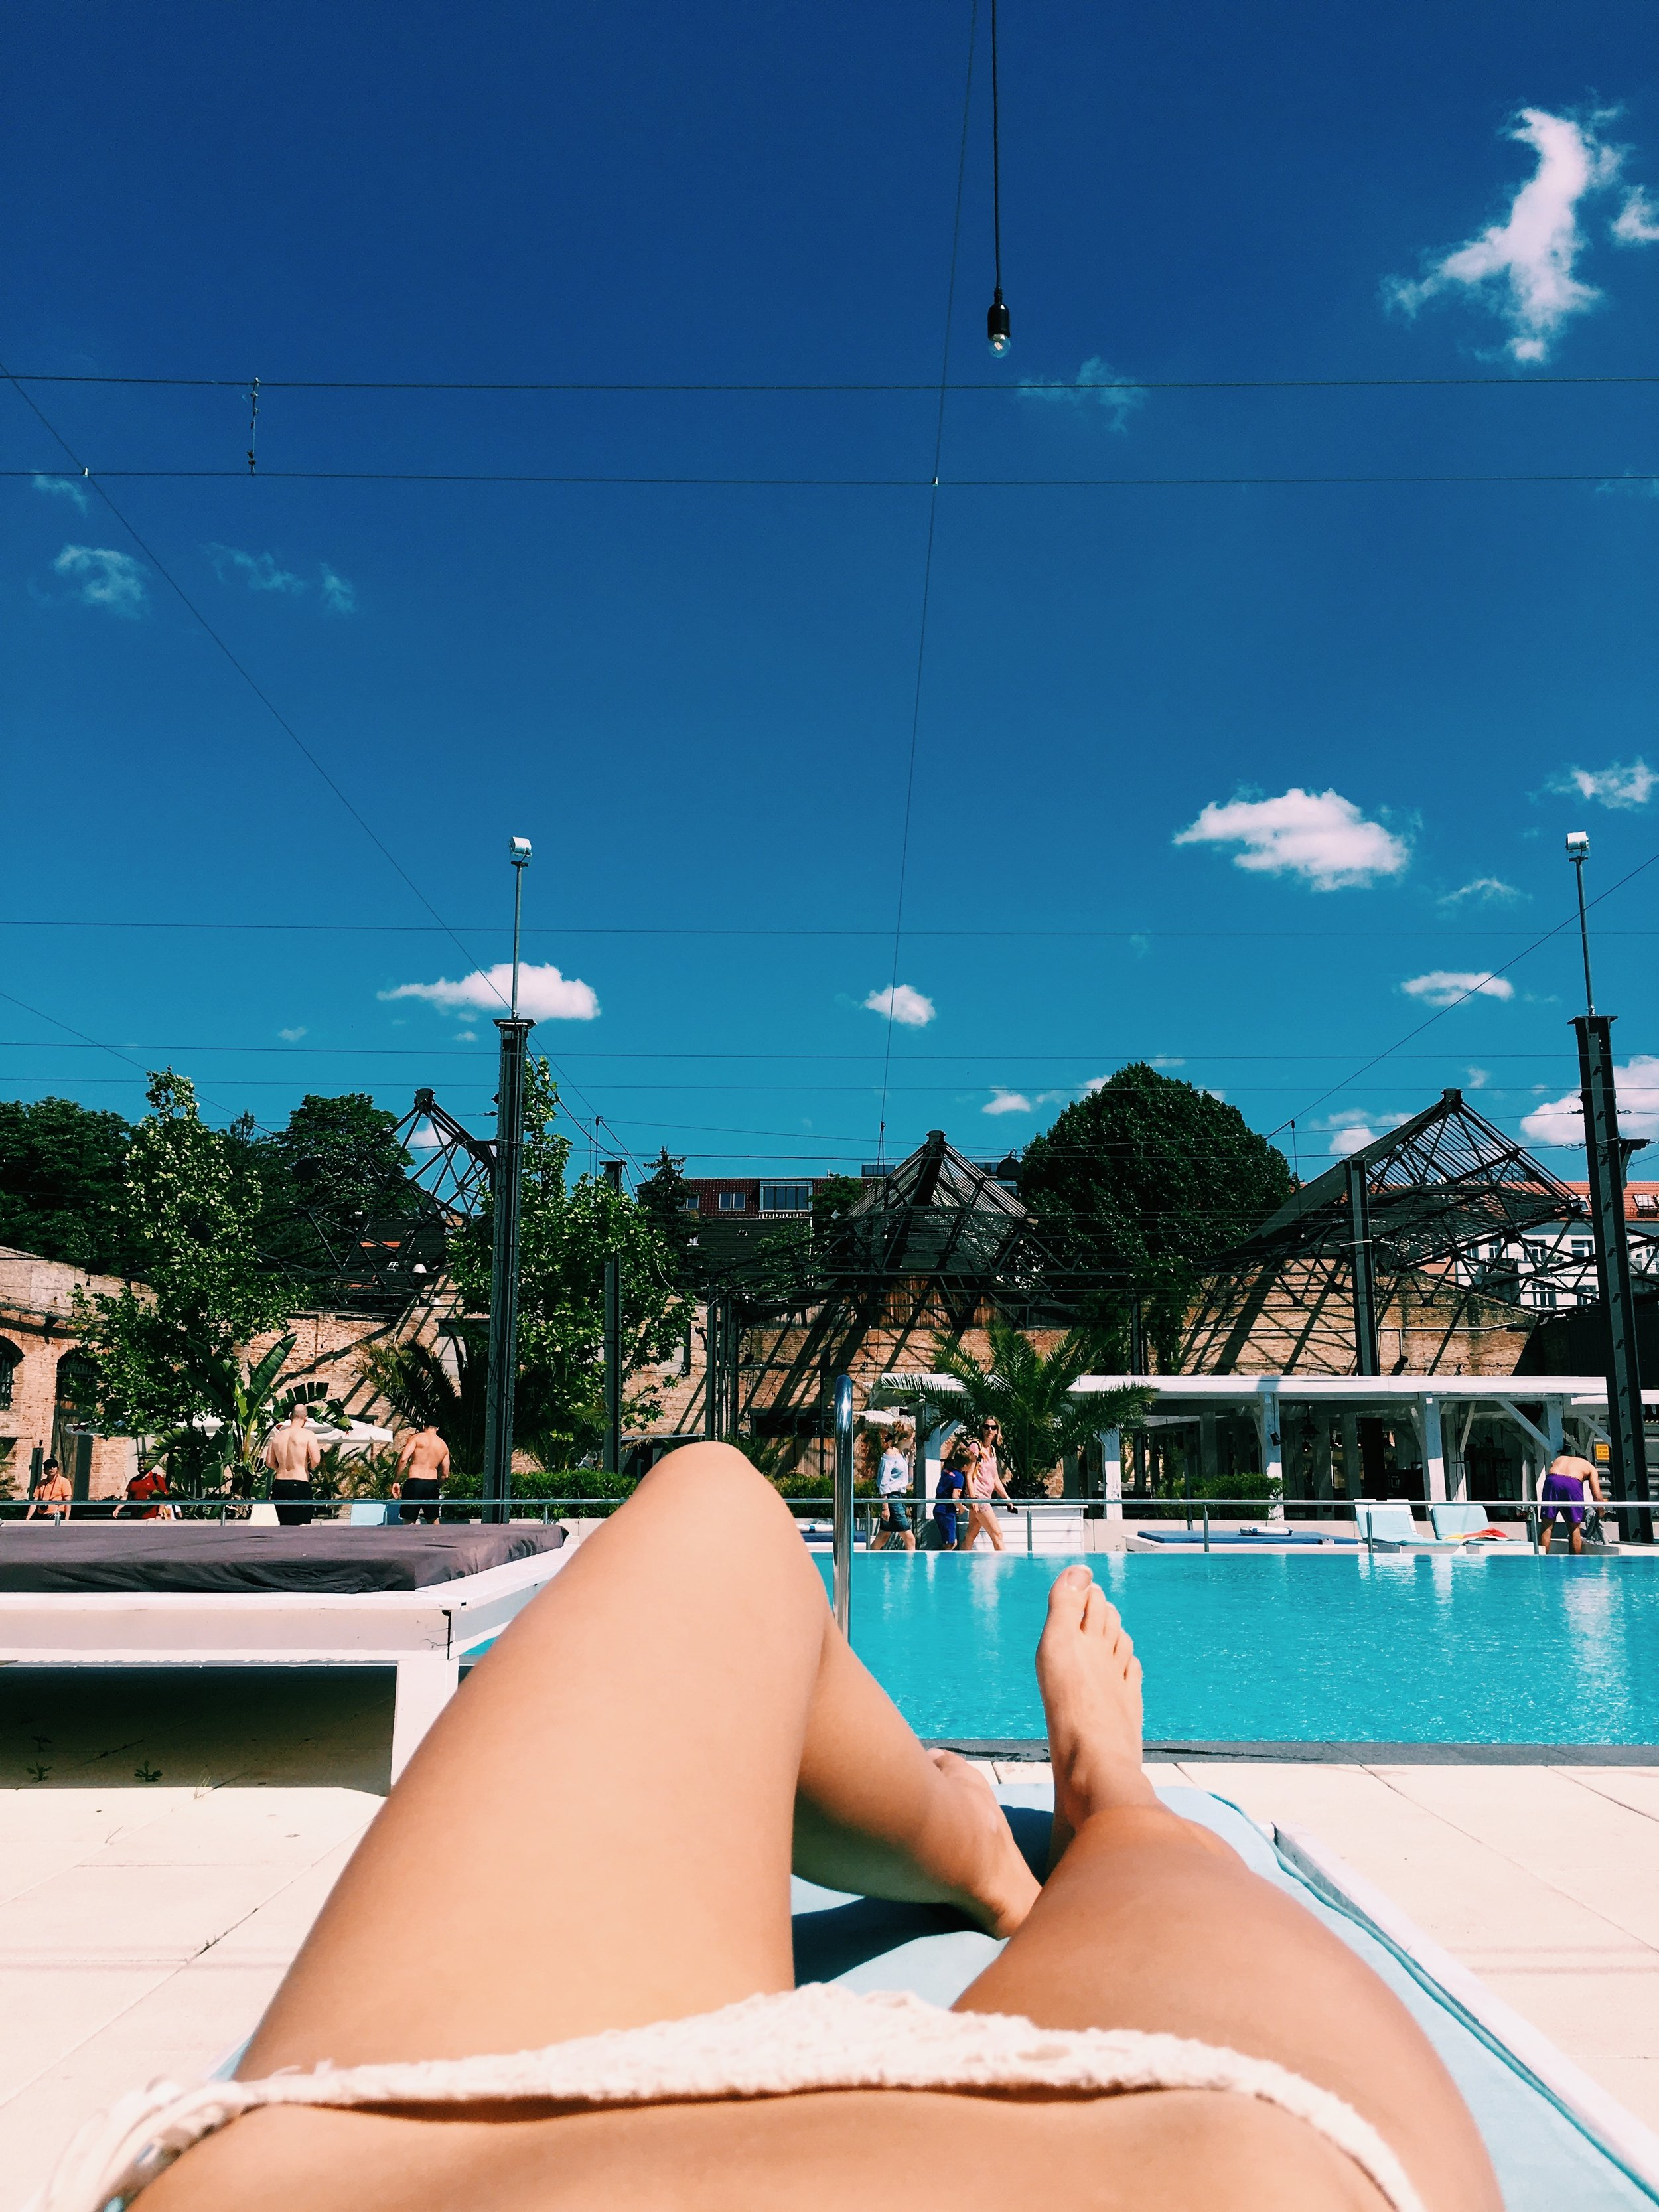 Haubentaucher - coolest location to go on a sunny day: bar and night club with the prettiest pool area